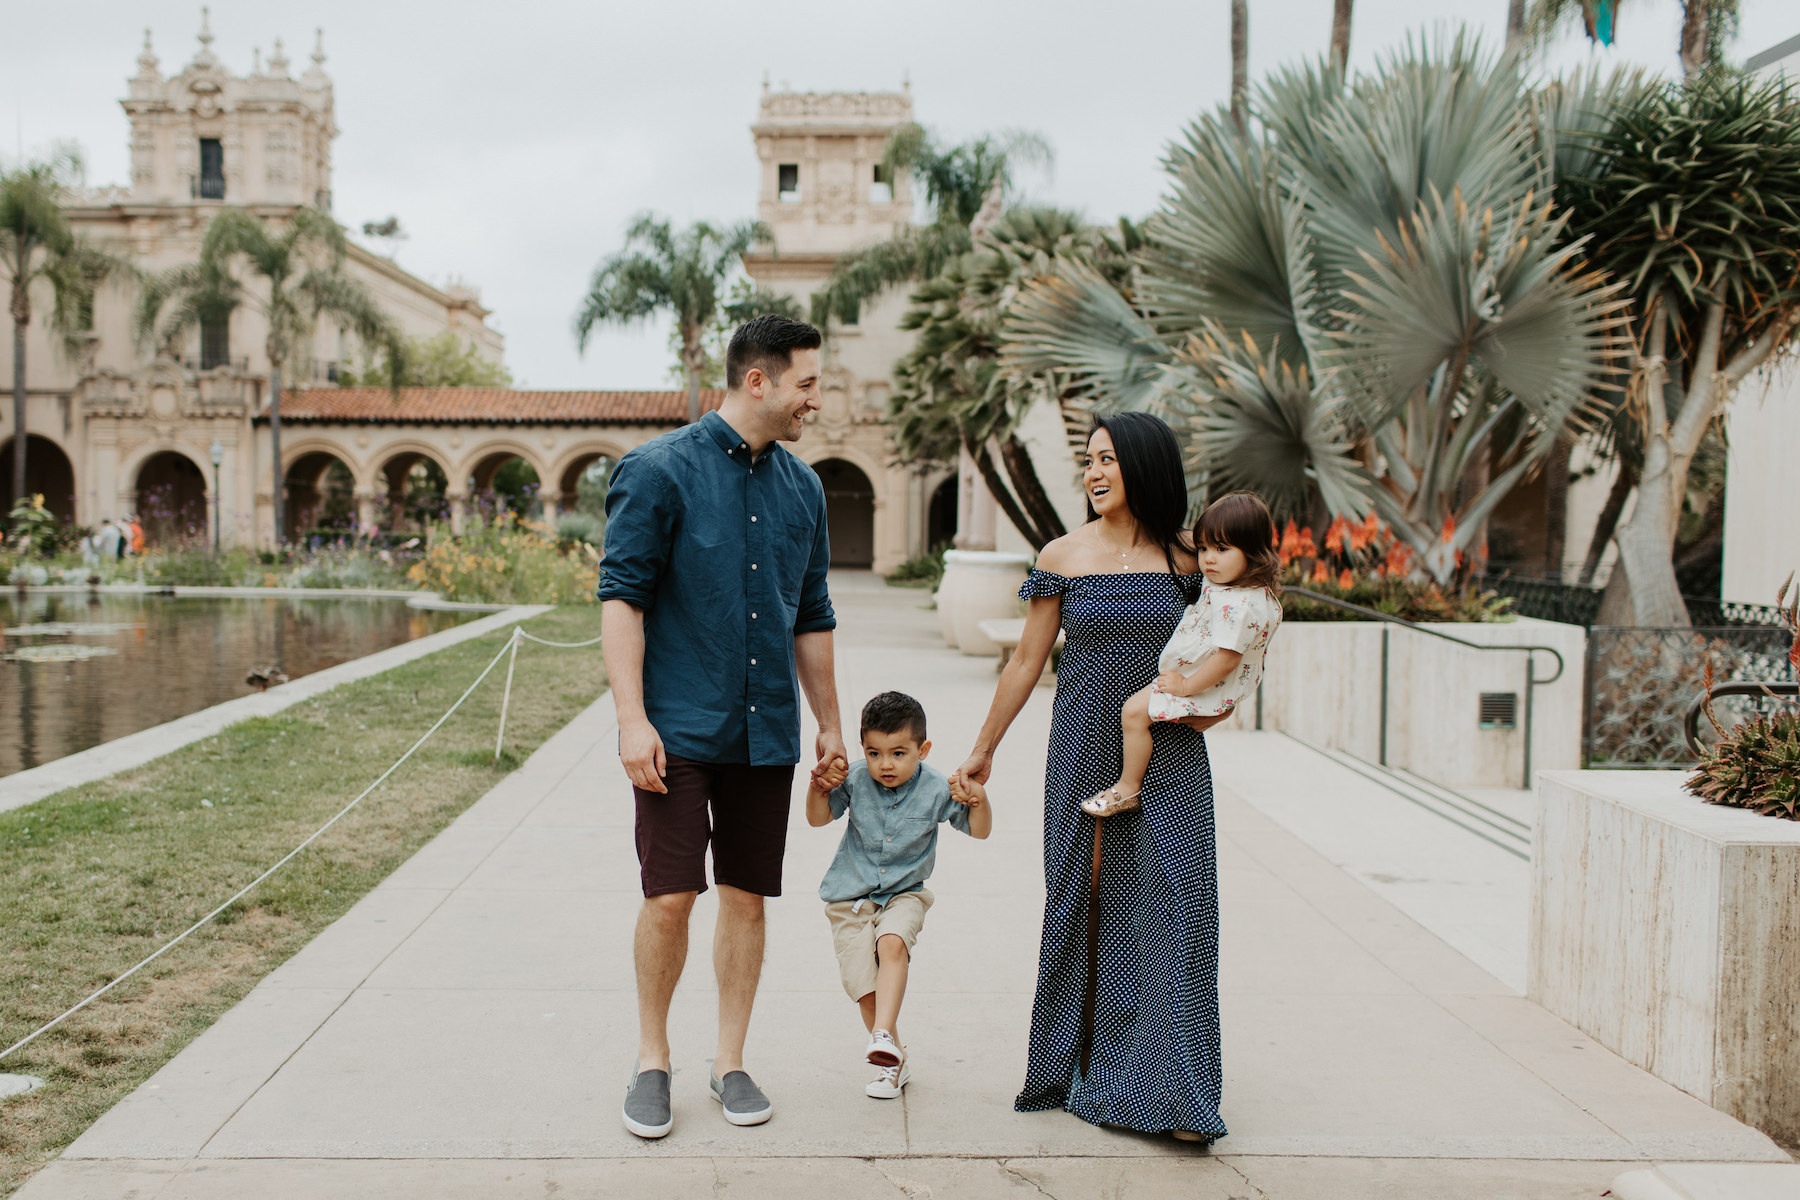 a family with two kids walking in Balboa Park San Diego, California